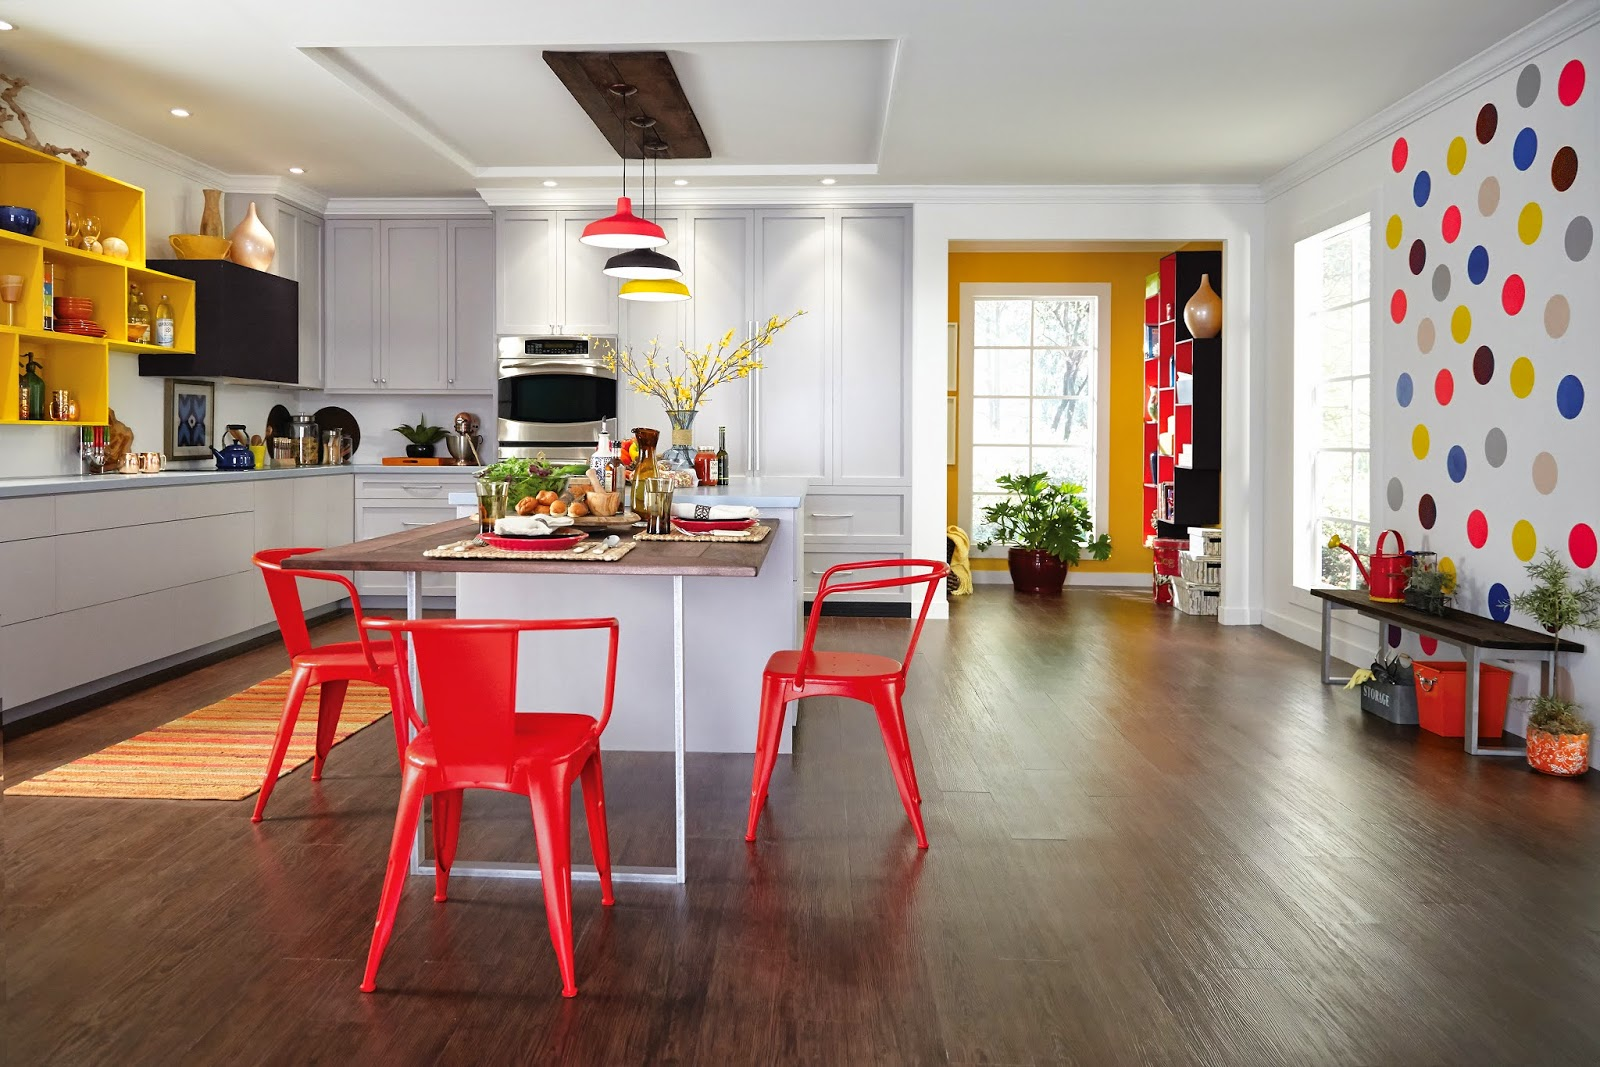 Ace Hardware Launches Exclusive 2015 Opi Color Palette By Clark+kensington  It's Arkeedah. Zen Kitchen Island. White Kitchen Vaulted Ceiling. Small Kitchen How To Make It Look Bigger. Dream Town Kitchen. Kitchen Floor Reviews. White Kitchen Makeovers. Vegan Kitchen Layout. Ikea Kitchen Guarantee